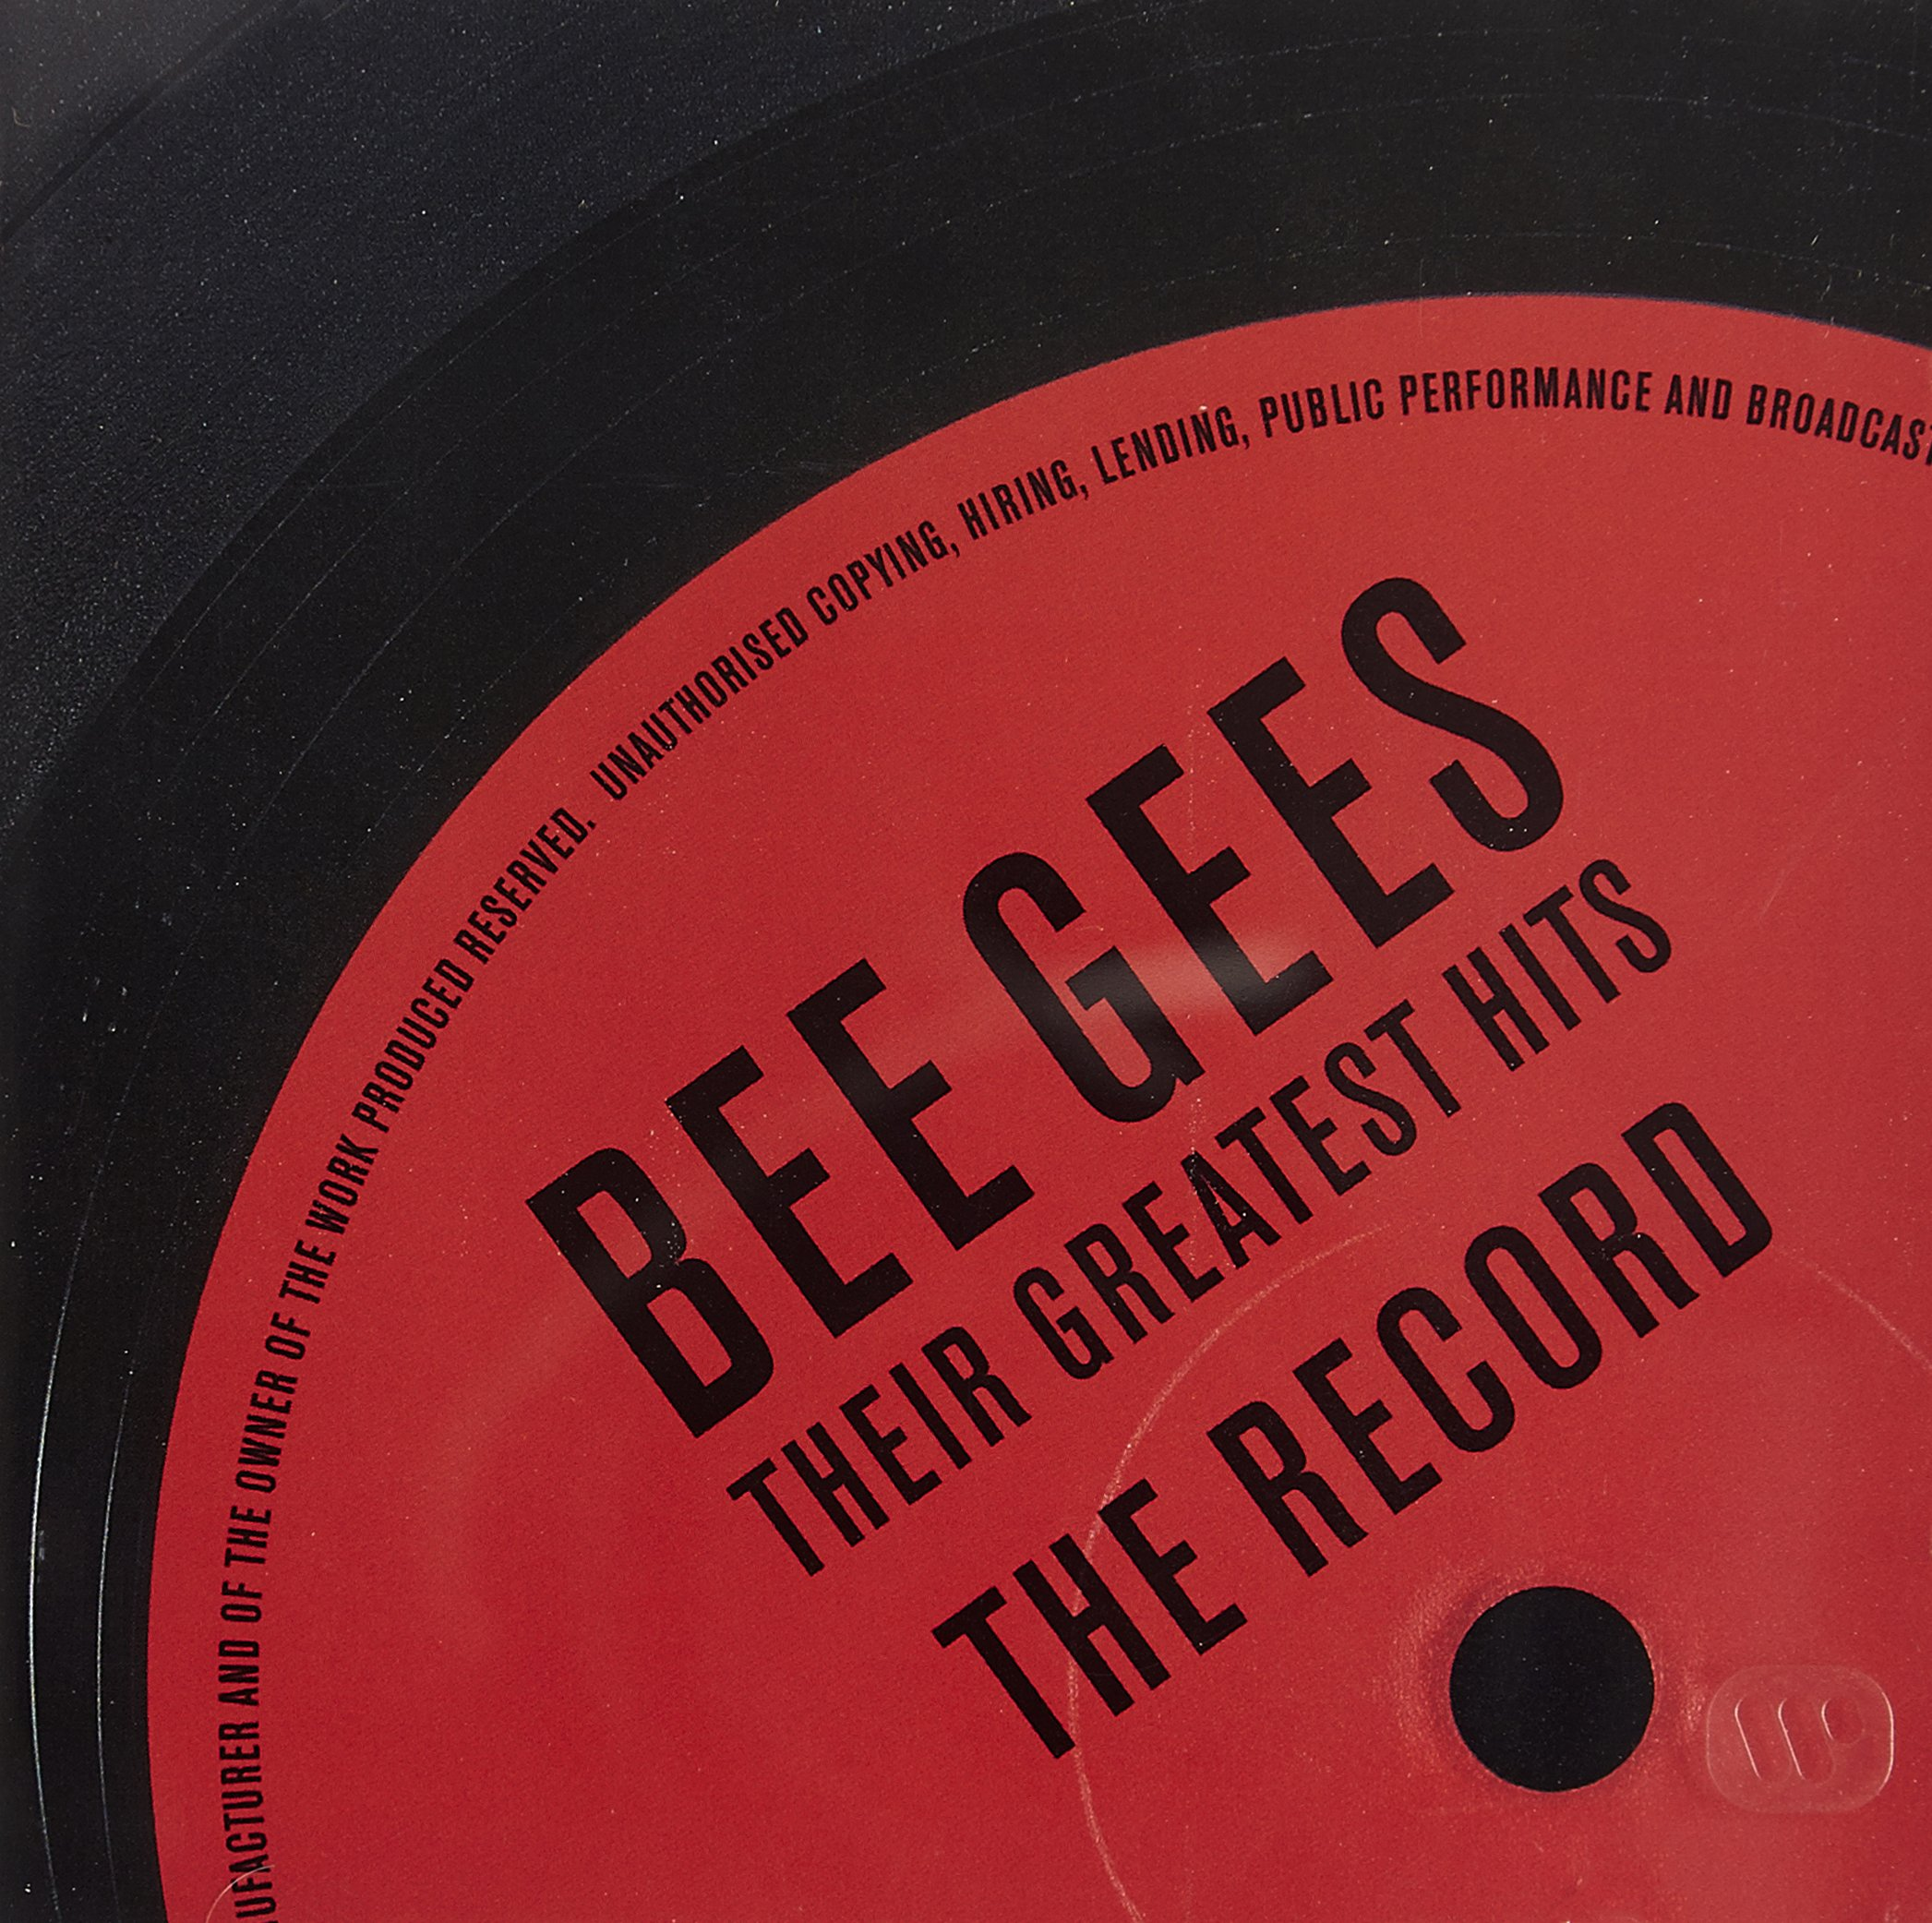 Their Greatest Hits by Bee Gees, The